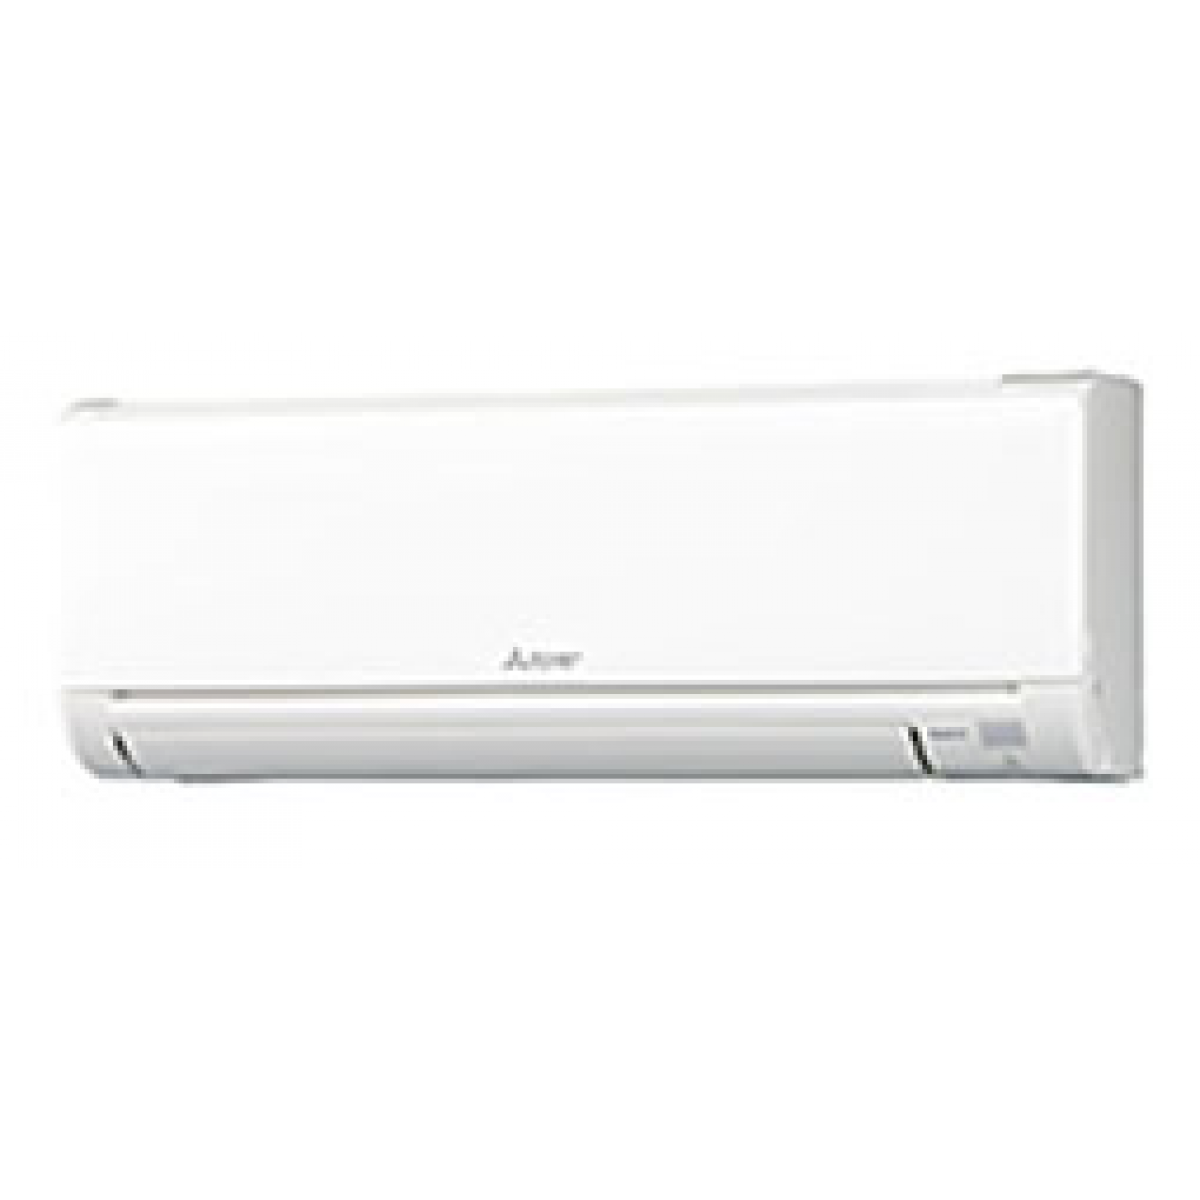 18k Btu Mitsubishi Msygl Wall Mounted Air Conditioner Indoor Unit